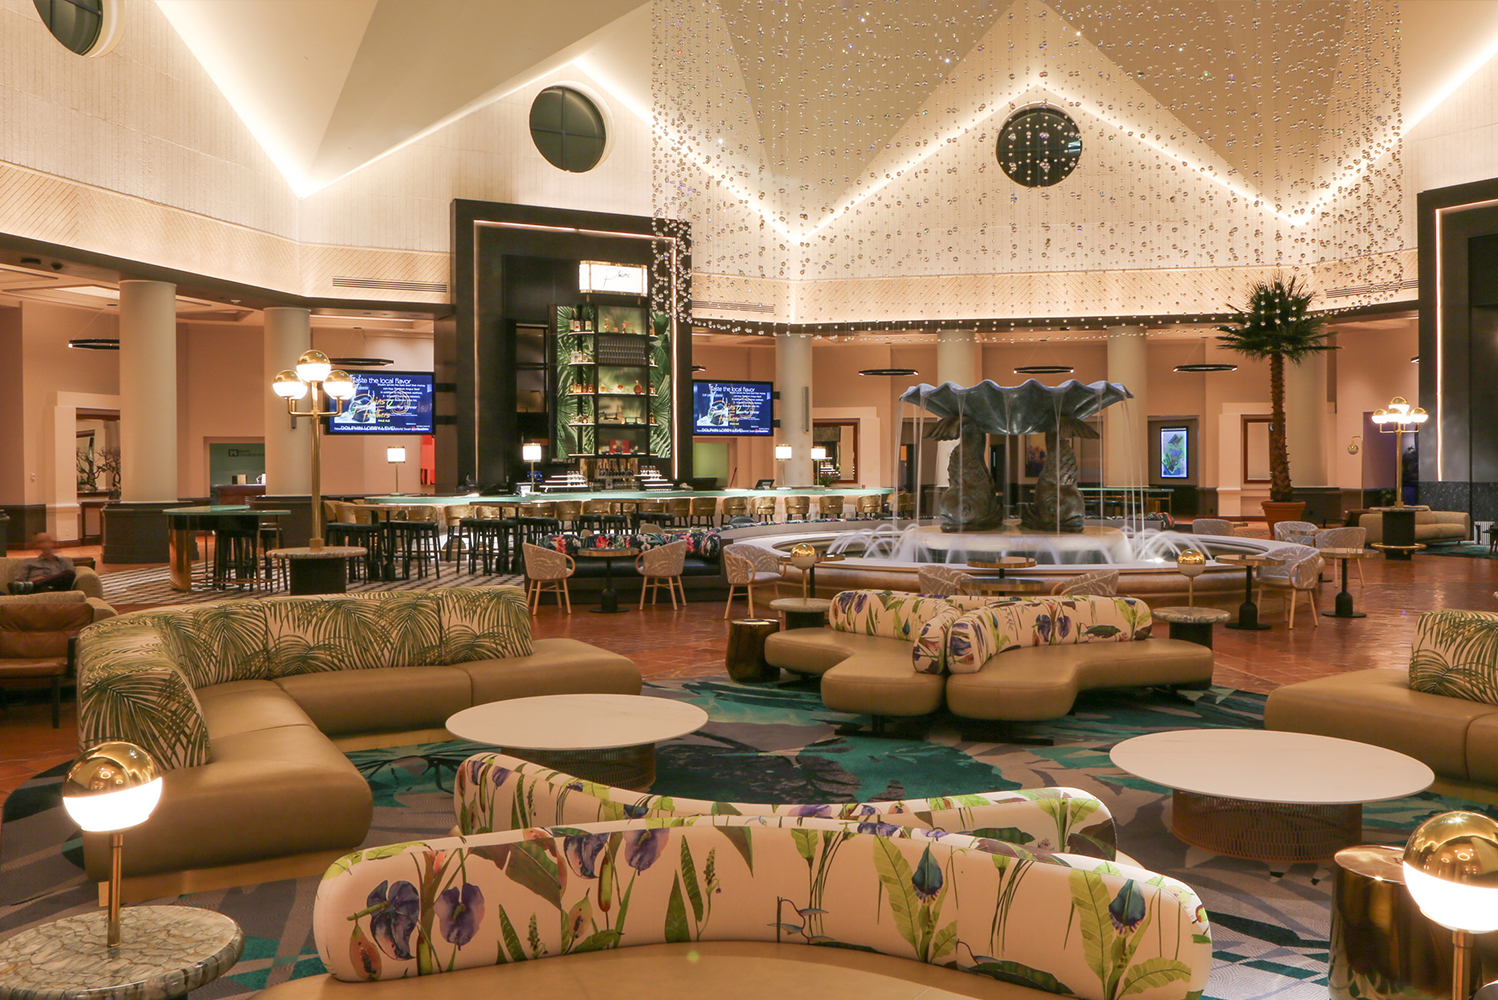 The Dolphin Resort lobby, designed by ICRAVE, has new look with a new geometric ceiling, enhanced lighting and more than double the amount of guest seating.